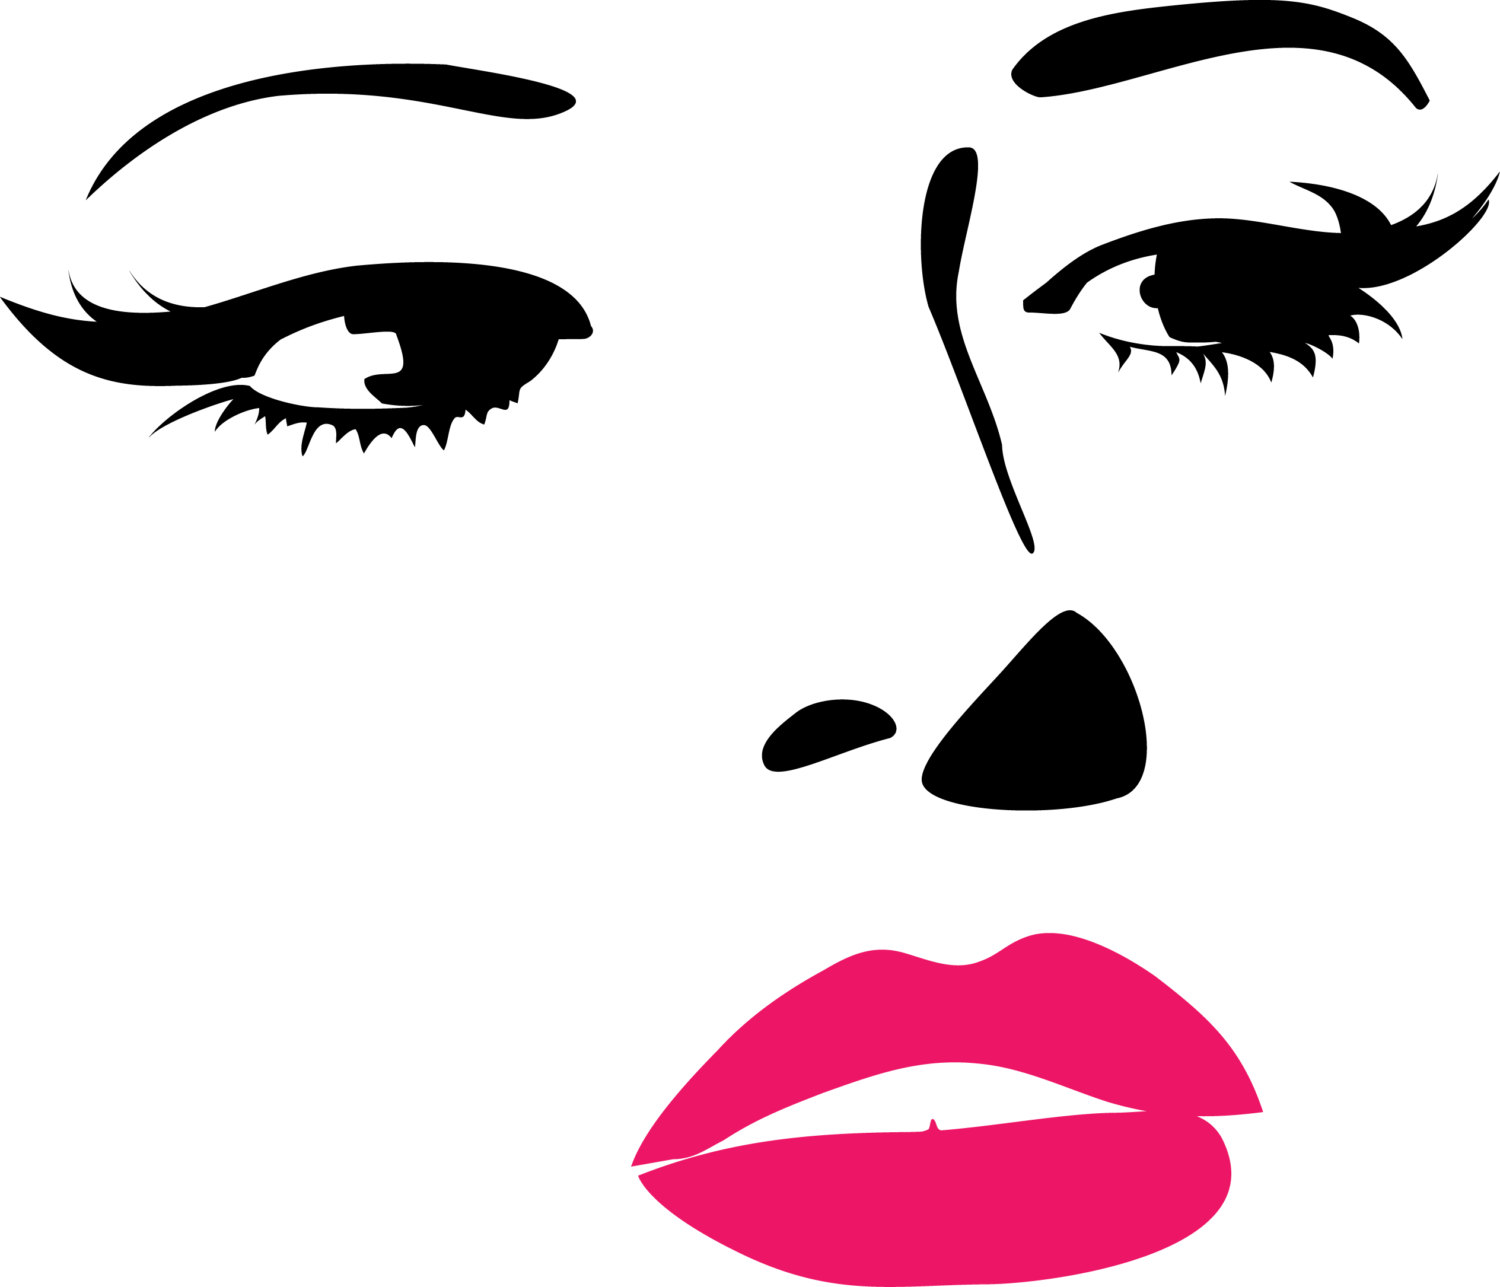 Free Lady Face Silhouette, Download Free Clip Art, Free Clip.